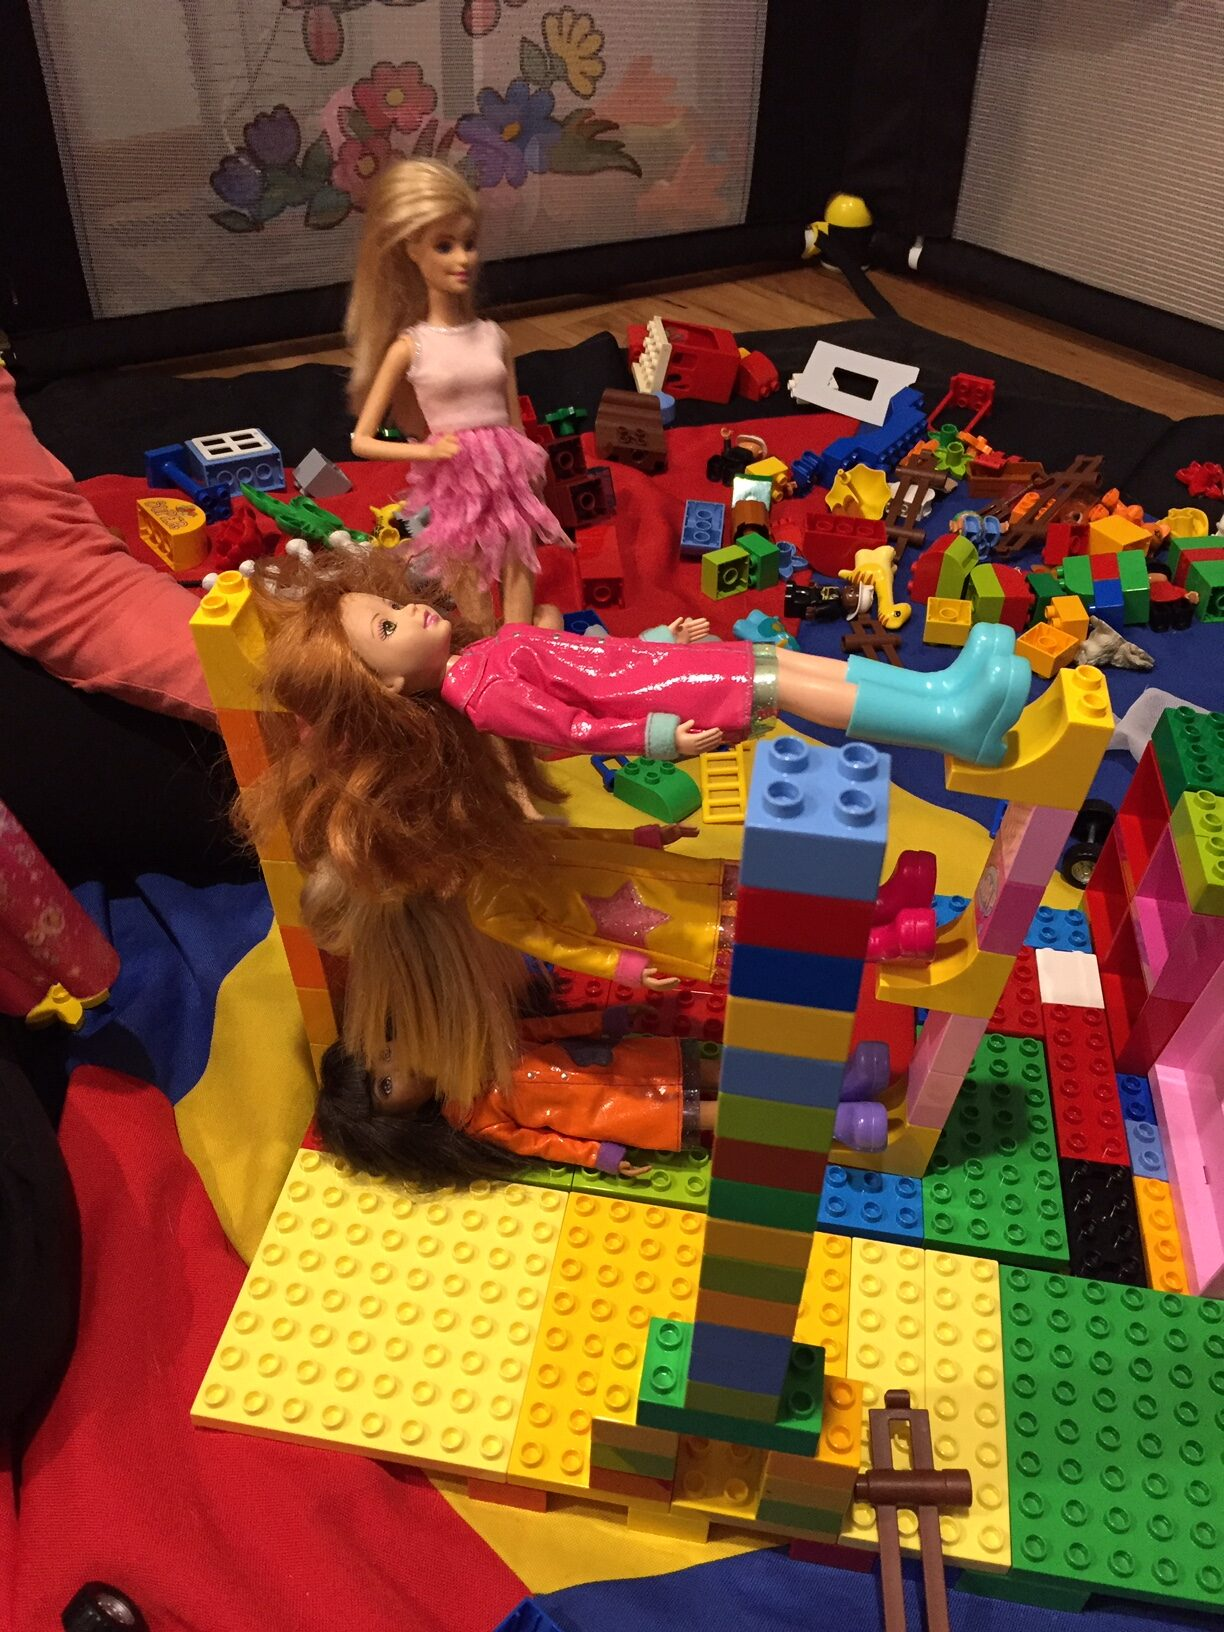 Celebrating life and the ability to build a triple decker dolls bed.